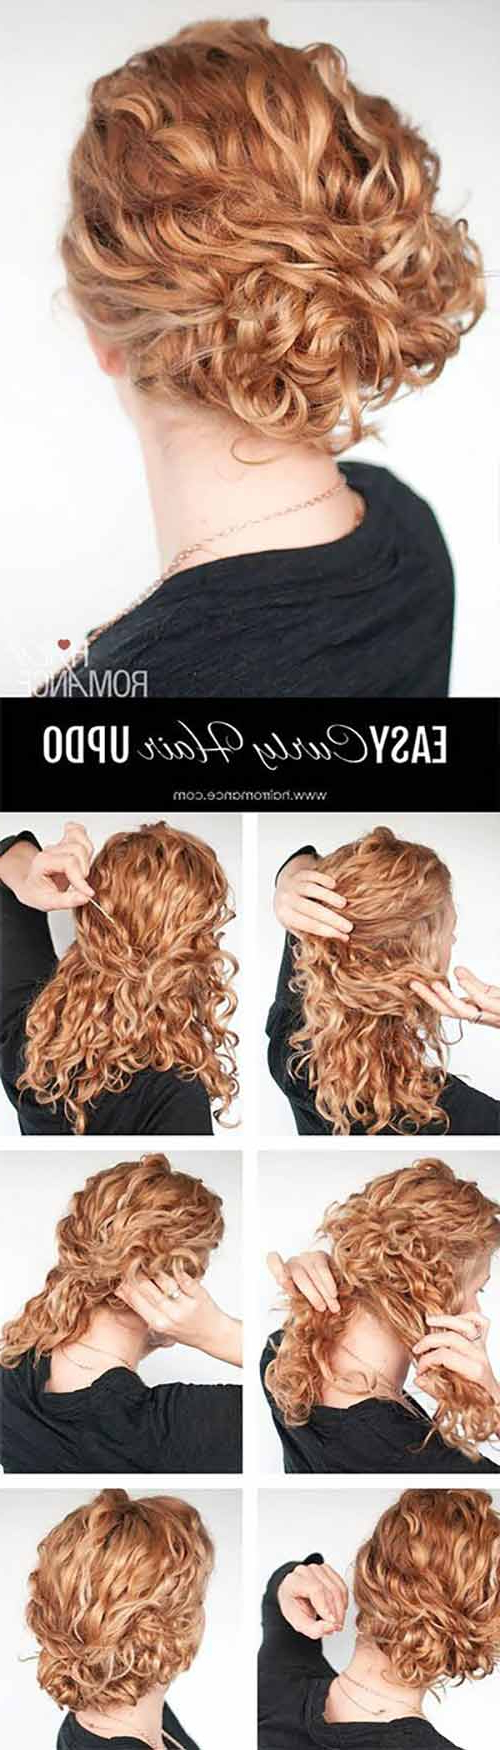 20 Incredibly Stunning Diy Updos For Curly Hair Within Popular Elegant Messy Updo Hairstyles On Curly Hair (View 3 of 20)